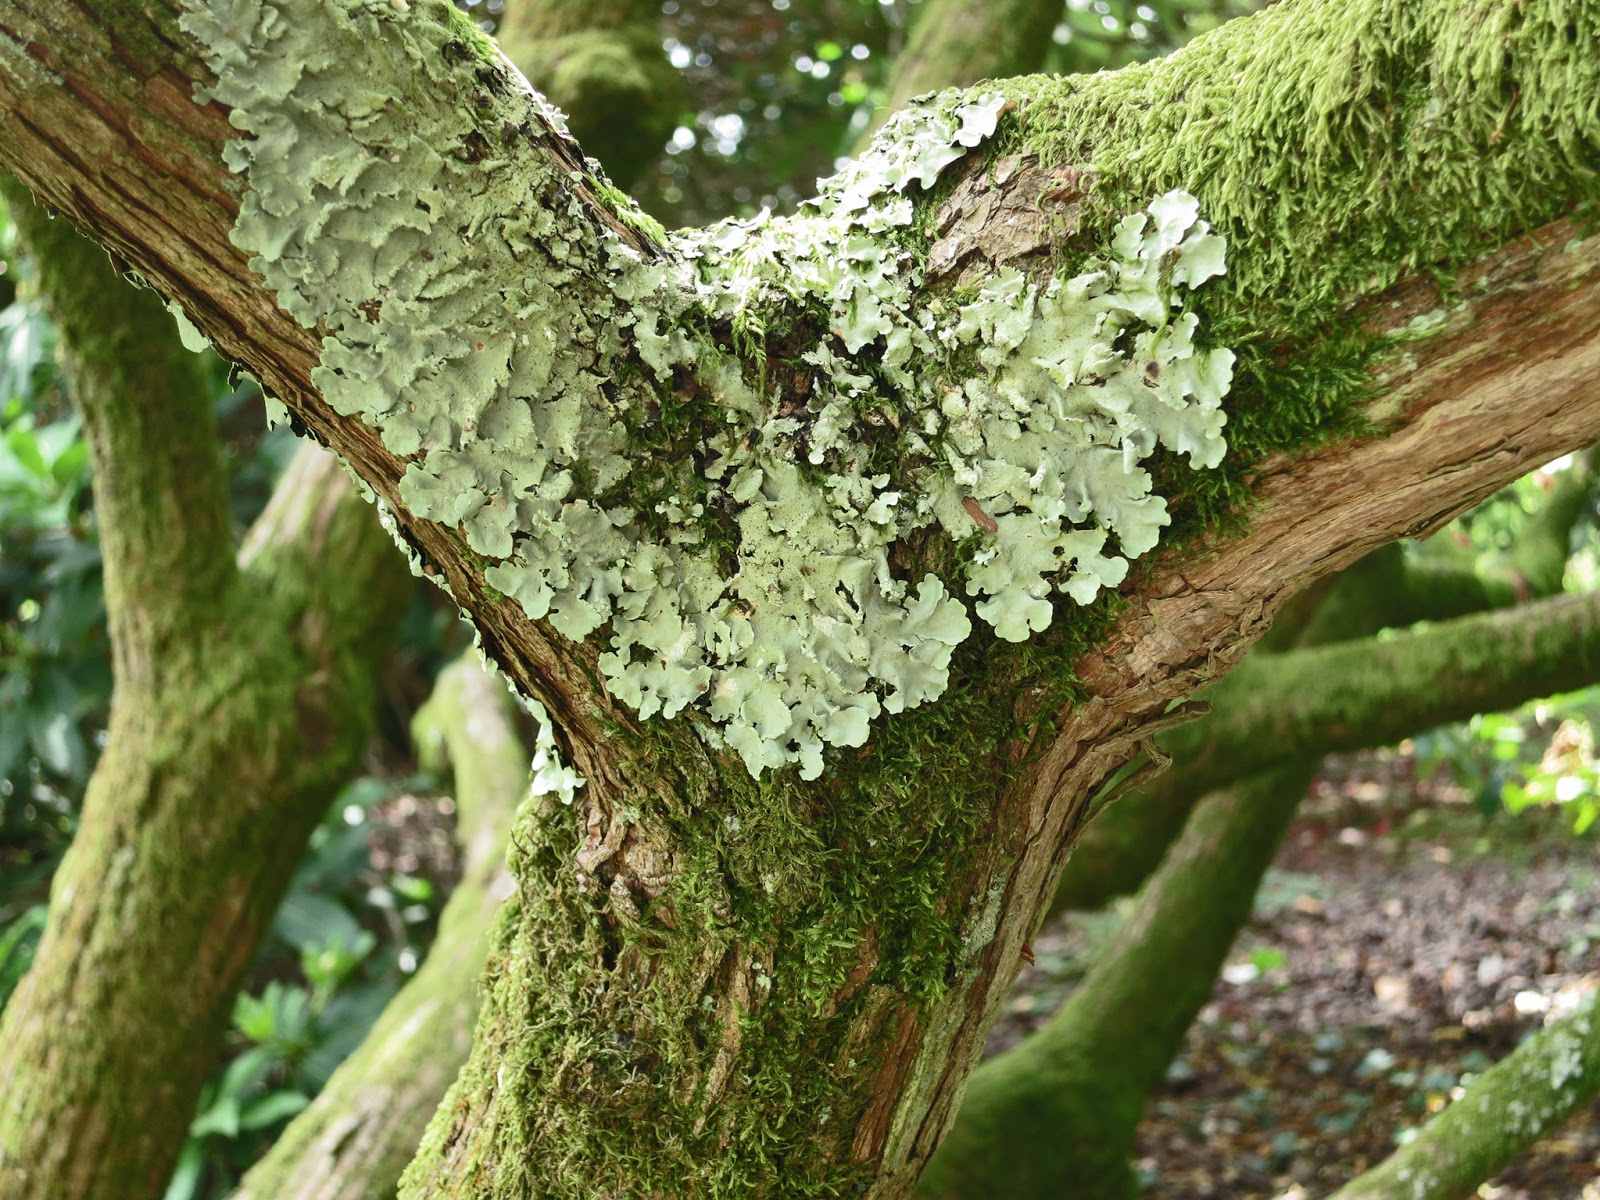 Lichen in v shaped crook of tree.